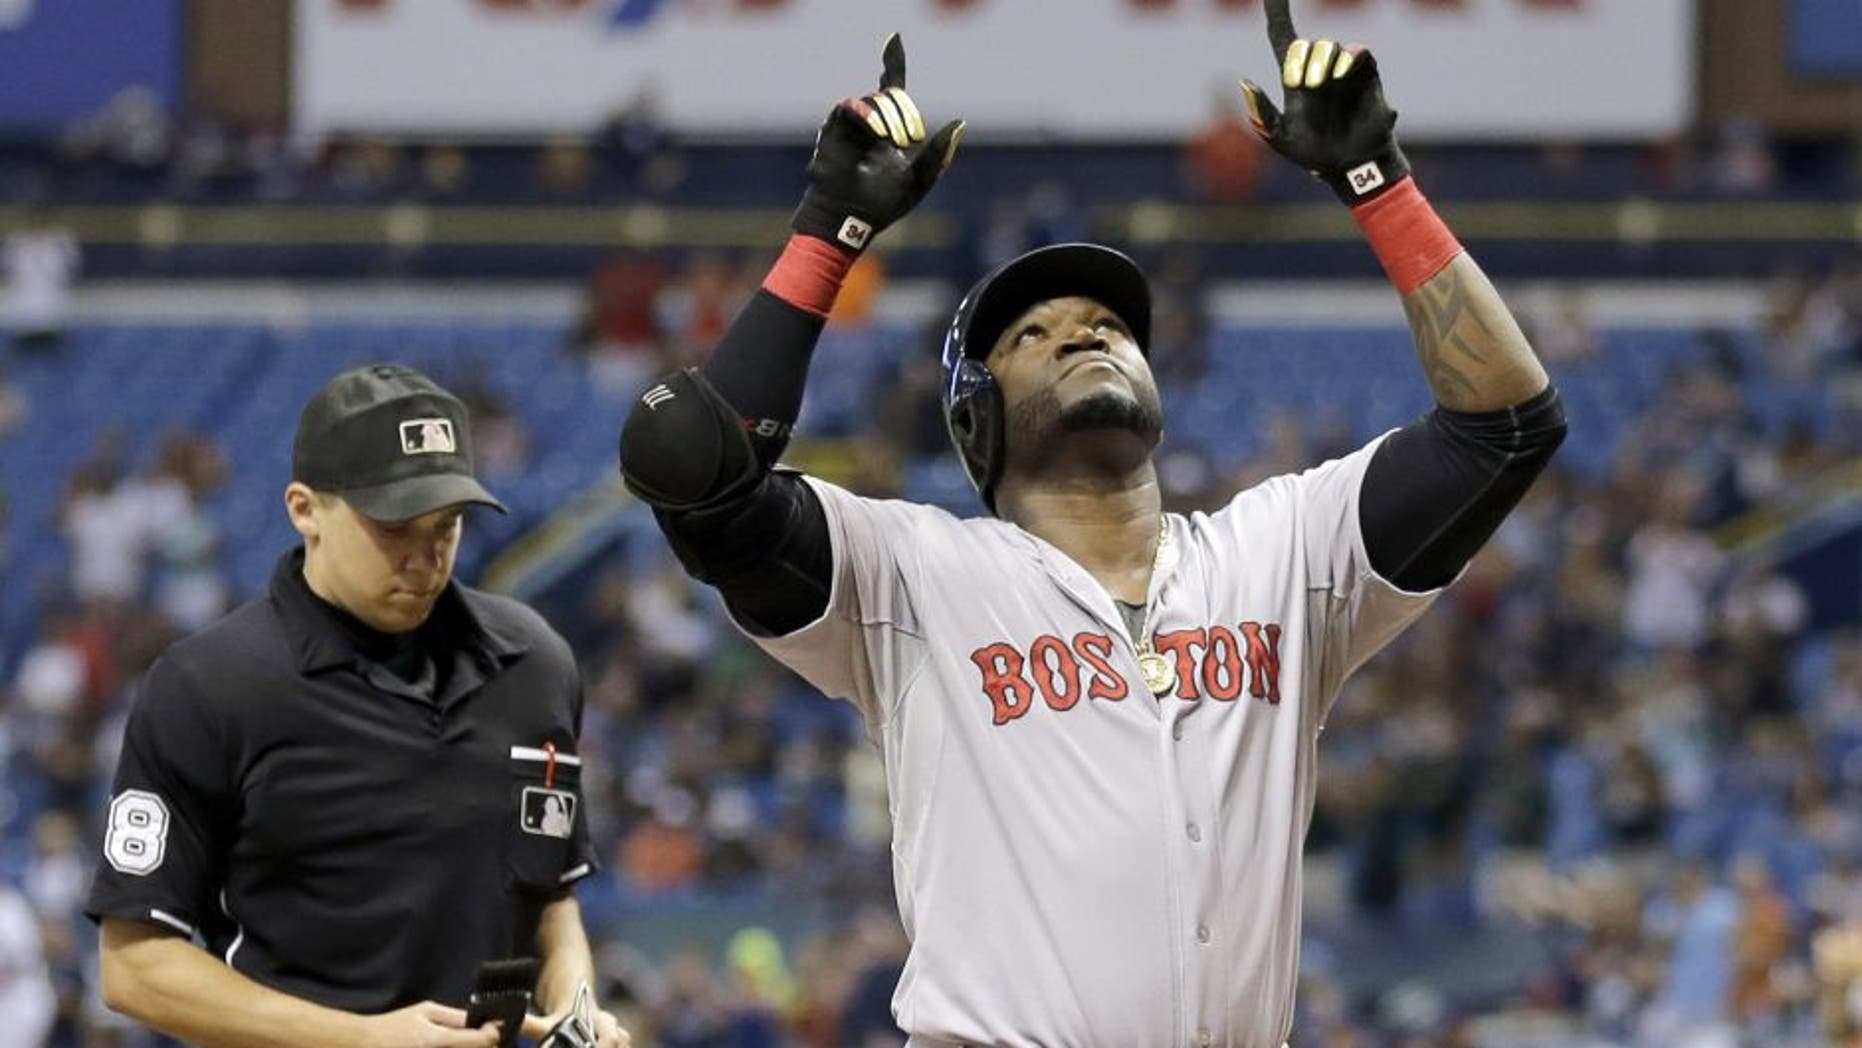 Boston Red Sox's David Ortiz reacts after hitting his 500th career home run off Tampa Bay Rays starting pitcher Matt Moore during the fifth inning of a baseball game Saturday, Sept. 12, 2015, in St. Petersburg, Fla. looking on is home plate umpire Adam Hamari. (AP Photo/Chris O'Meara)